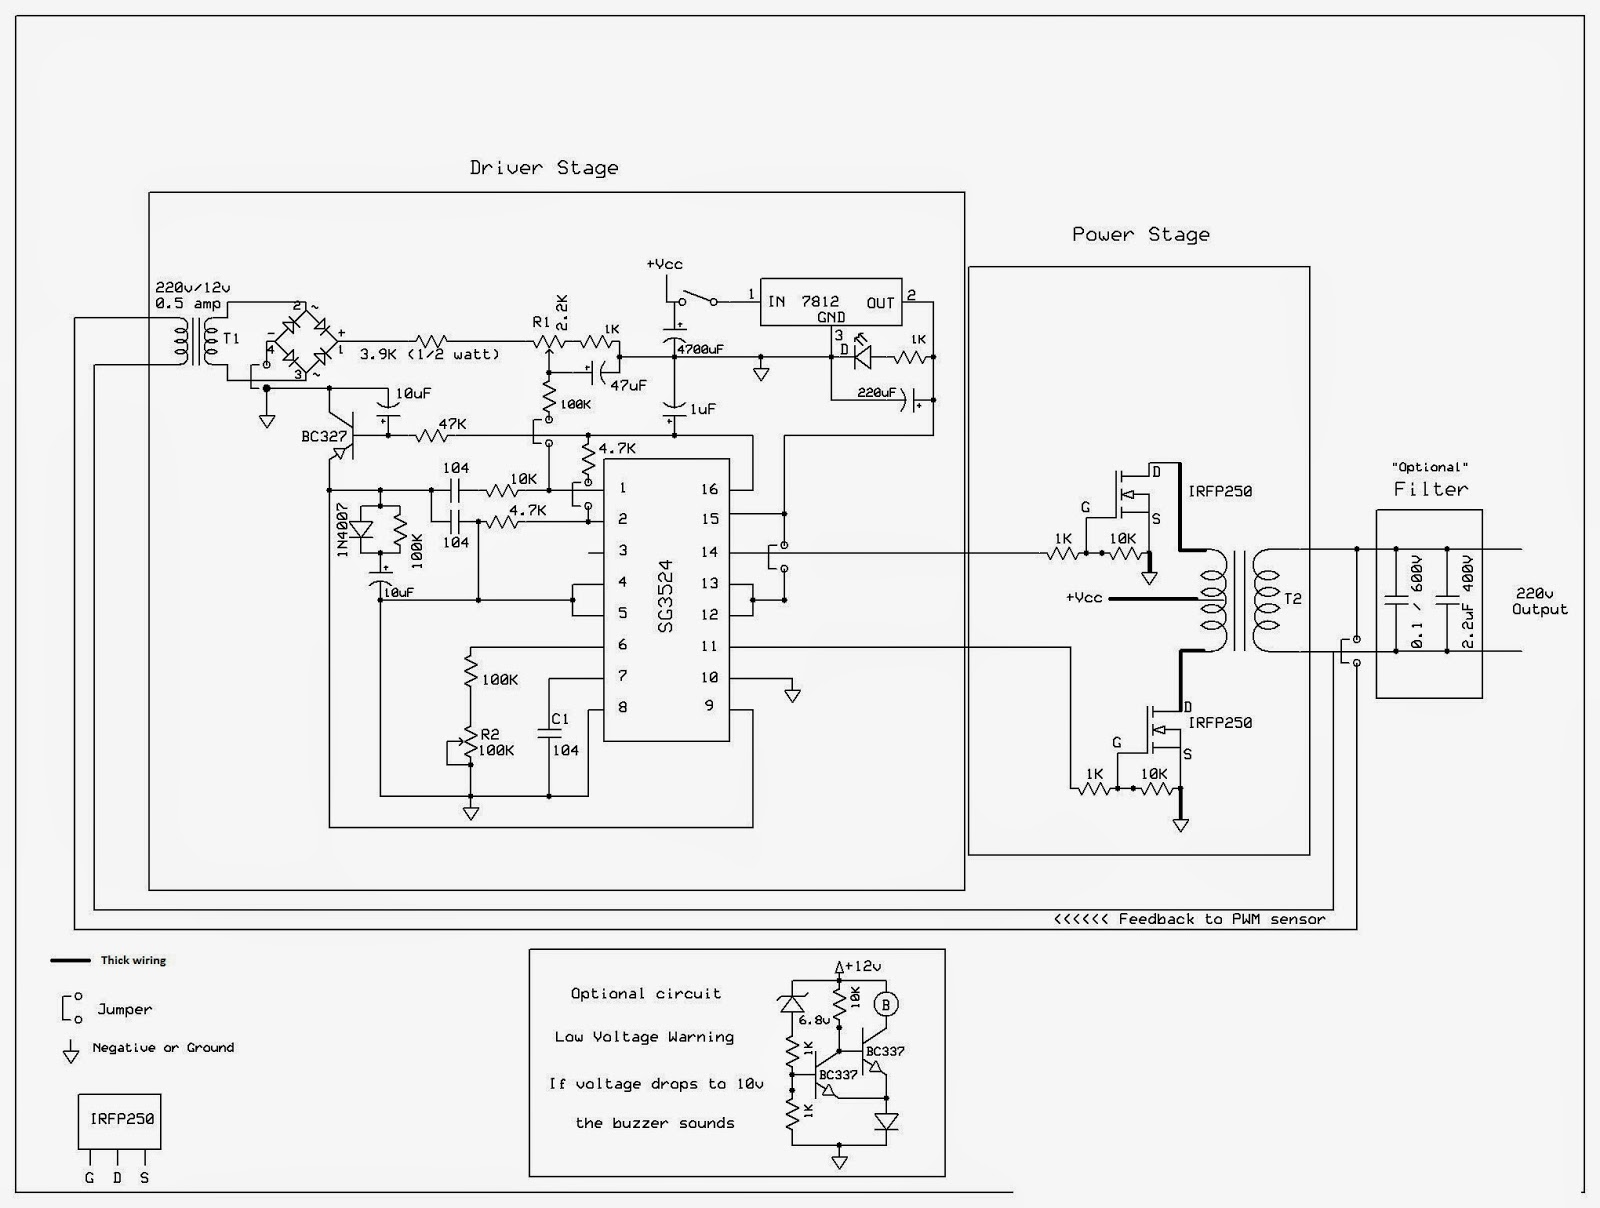 Simple Inverter Schematic Diagram Use Mj2955 Eleccircuit Wire Portable Generator Sears Wiring No 74149a And Parts Circuit Using Sg3524 Schematics